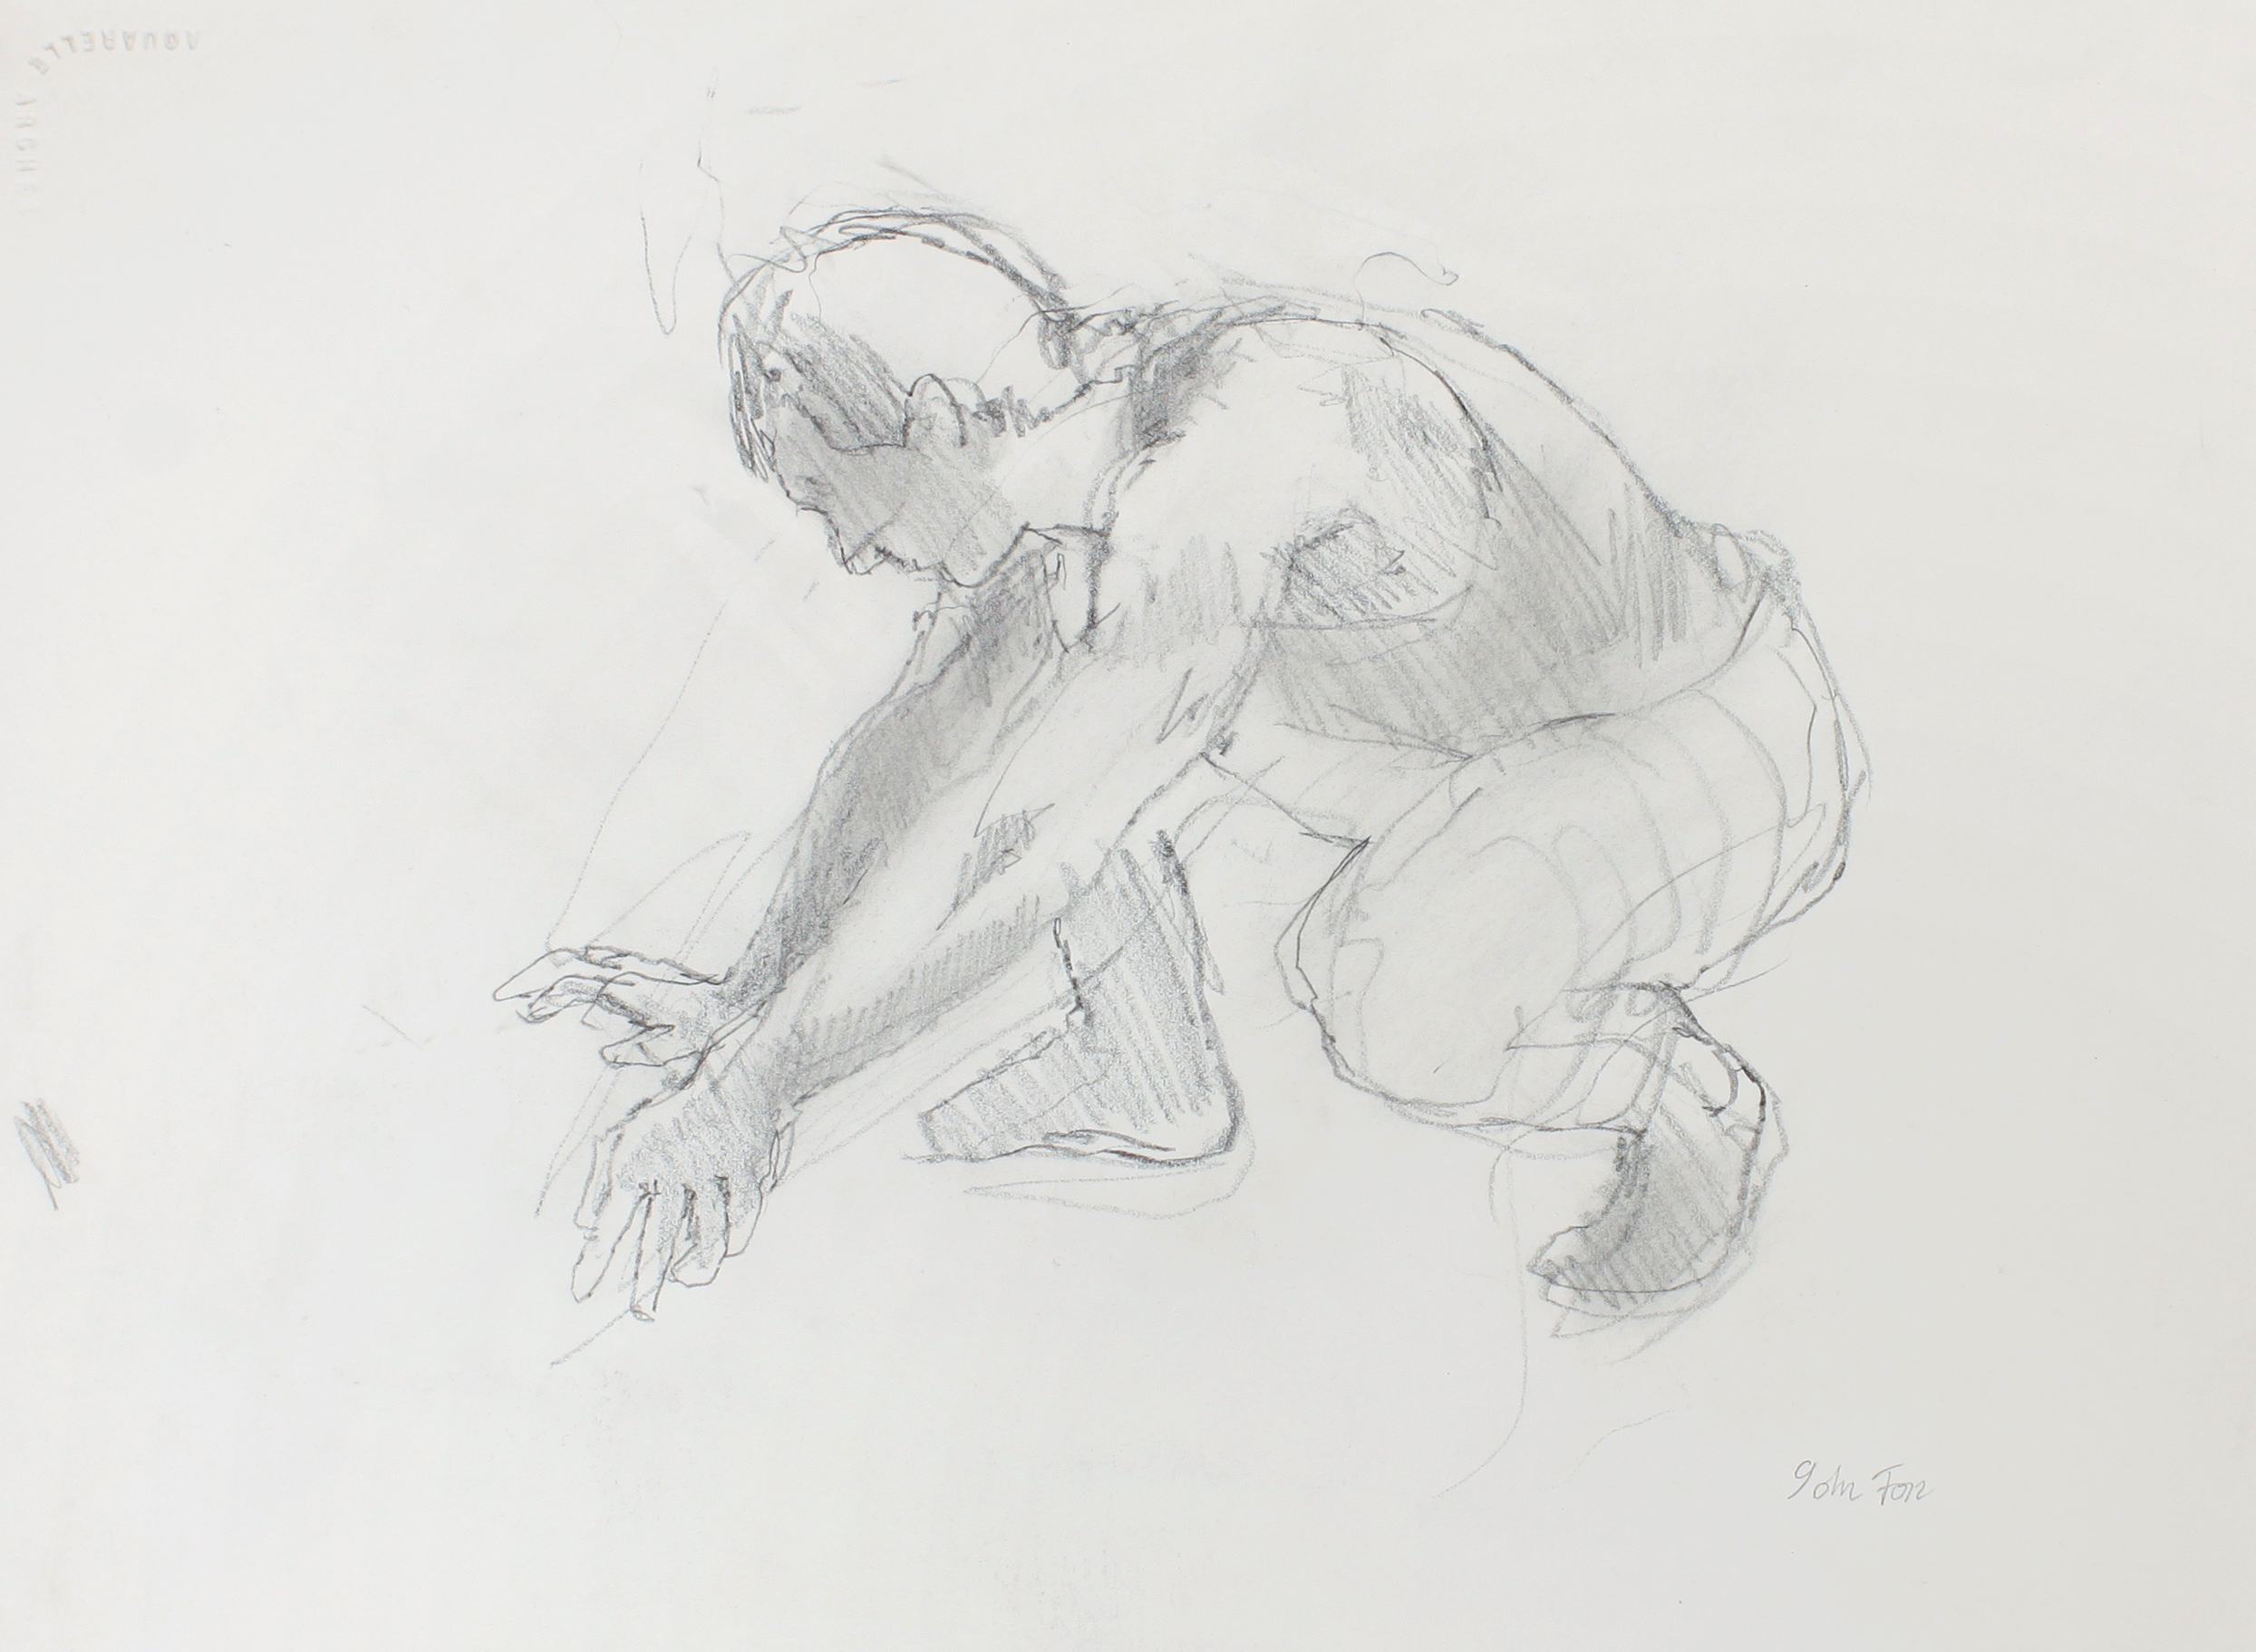 1980s_Digger_Crouching_Figure_pencil_on_paper_11x15in_WPF597.jpg